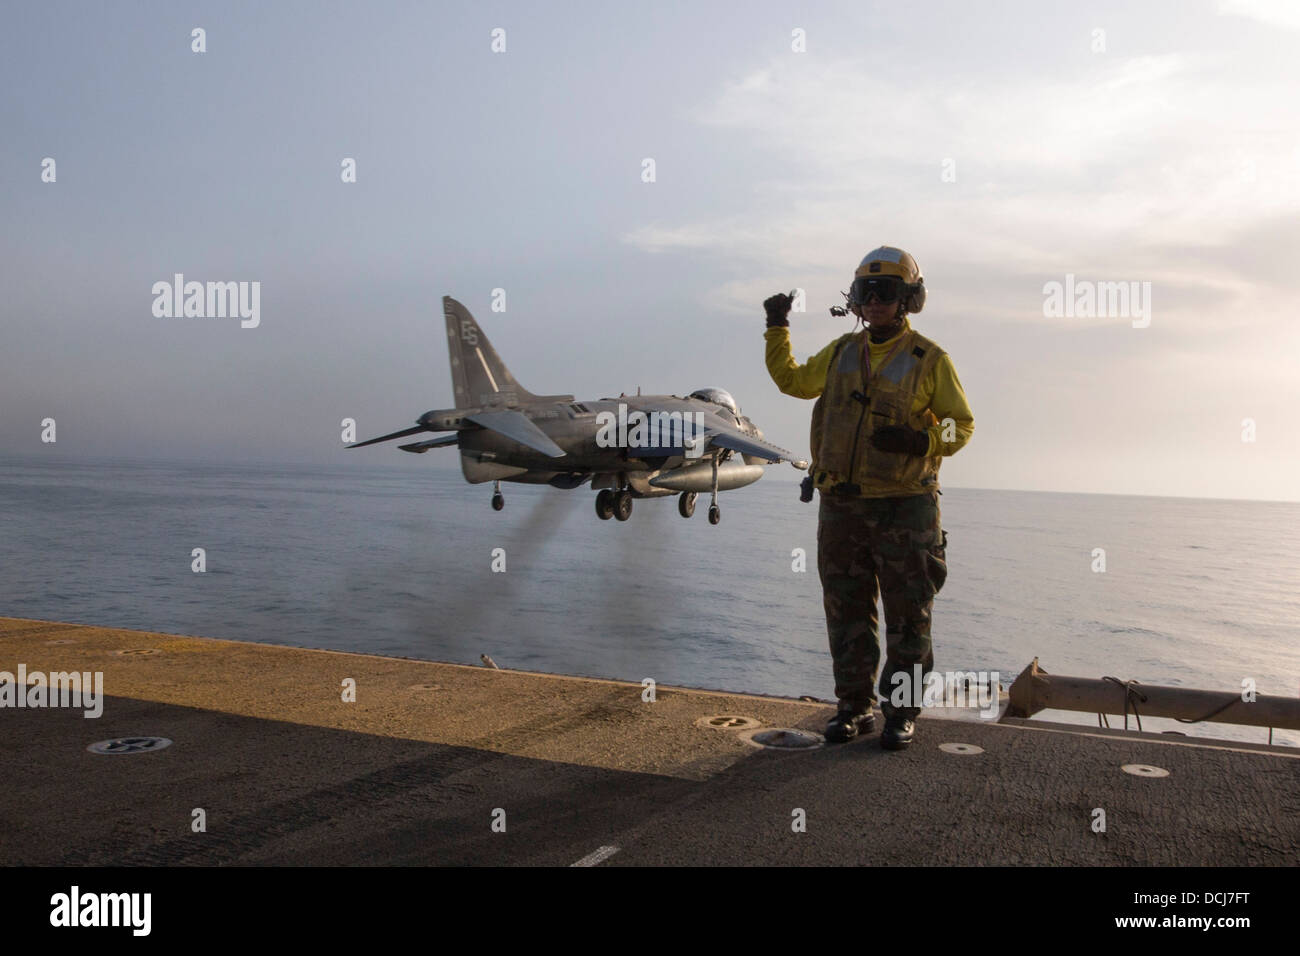 Aviation Boatswain's Mate (Handling) Airman Lucy Pizarro signals as an AV-8B Harrier takes off from the amphibious - Stock Image